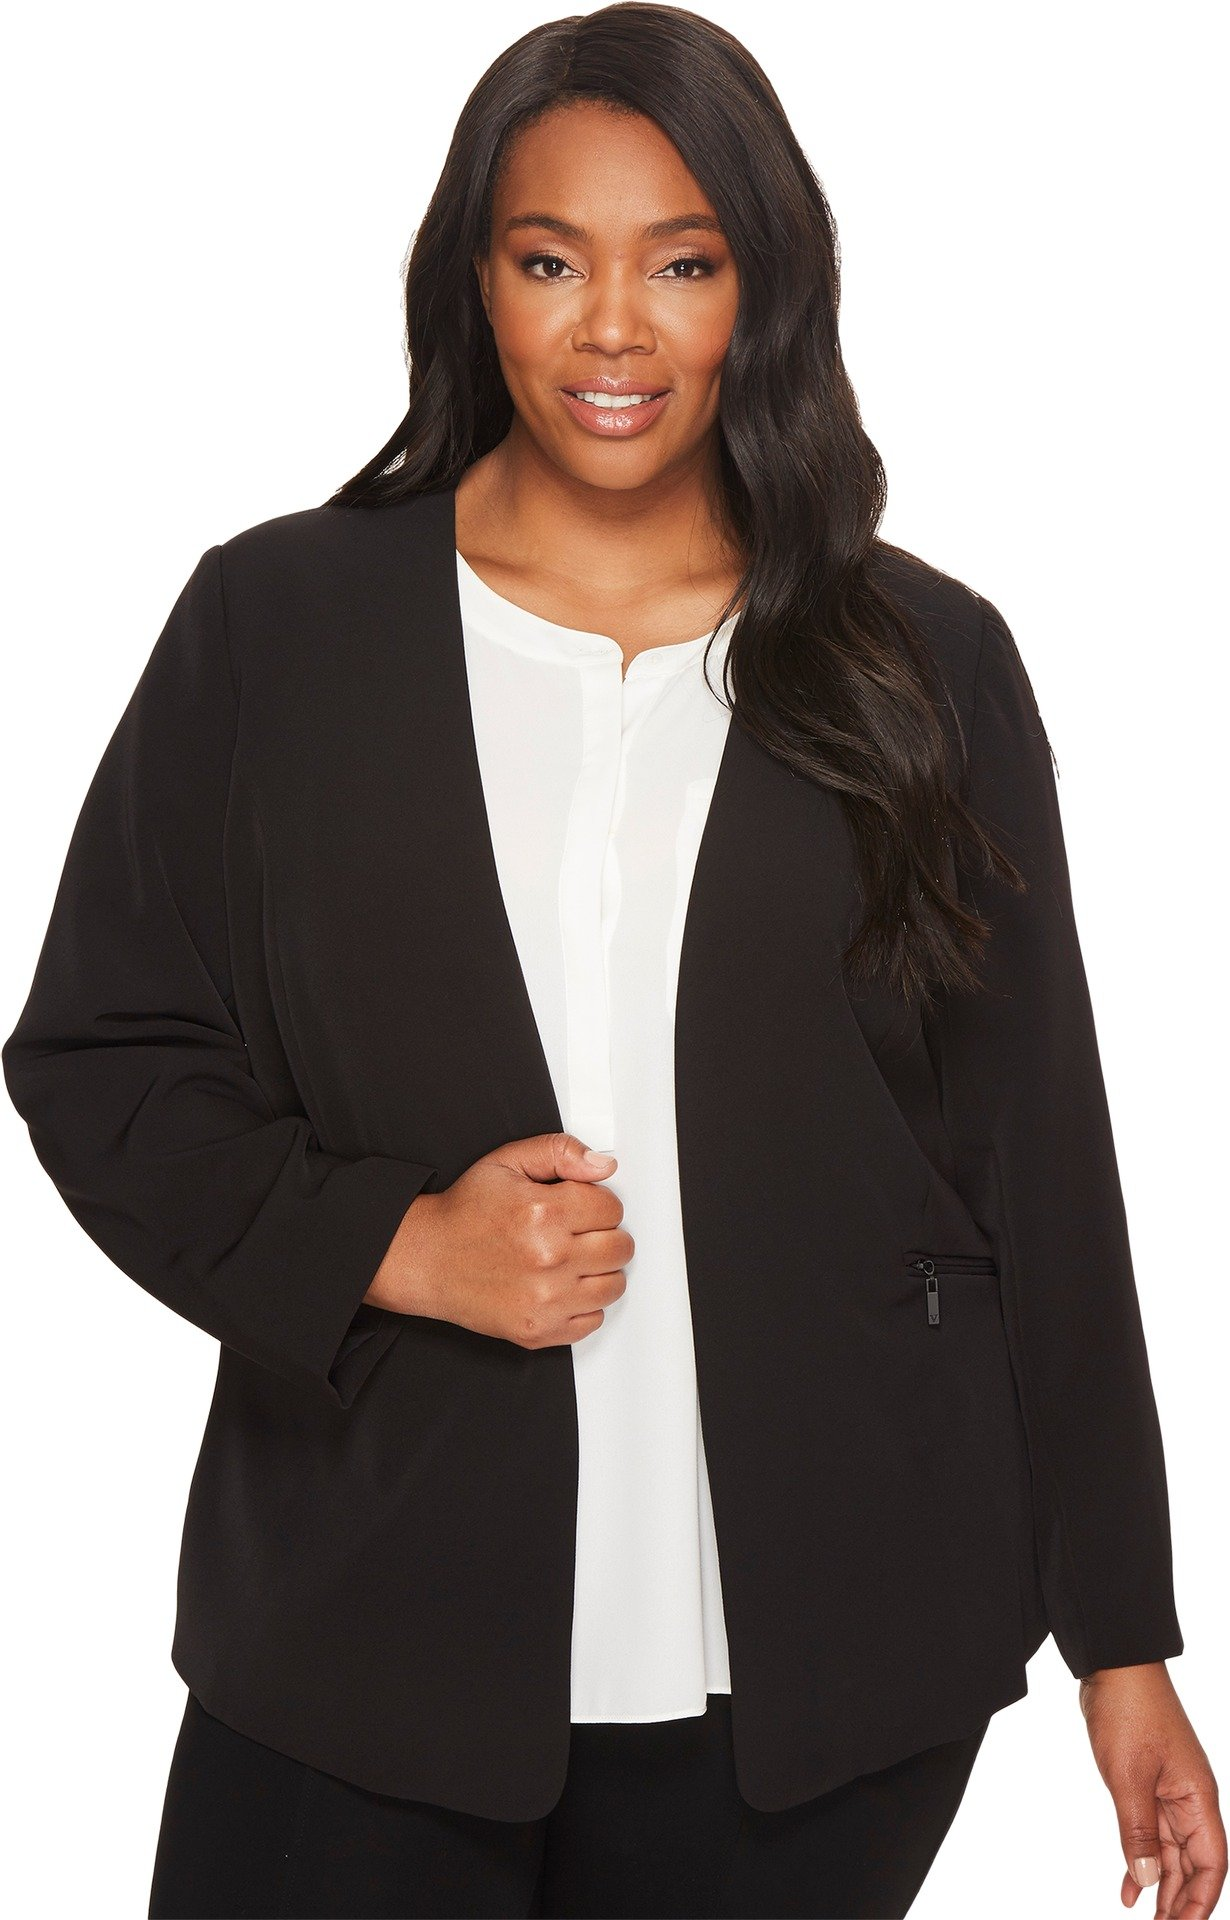 Vince Camuto Specialty Size Women's Plus Size Milano Twill Open Front Blazer Rich Black 22 W